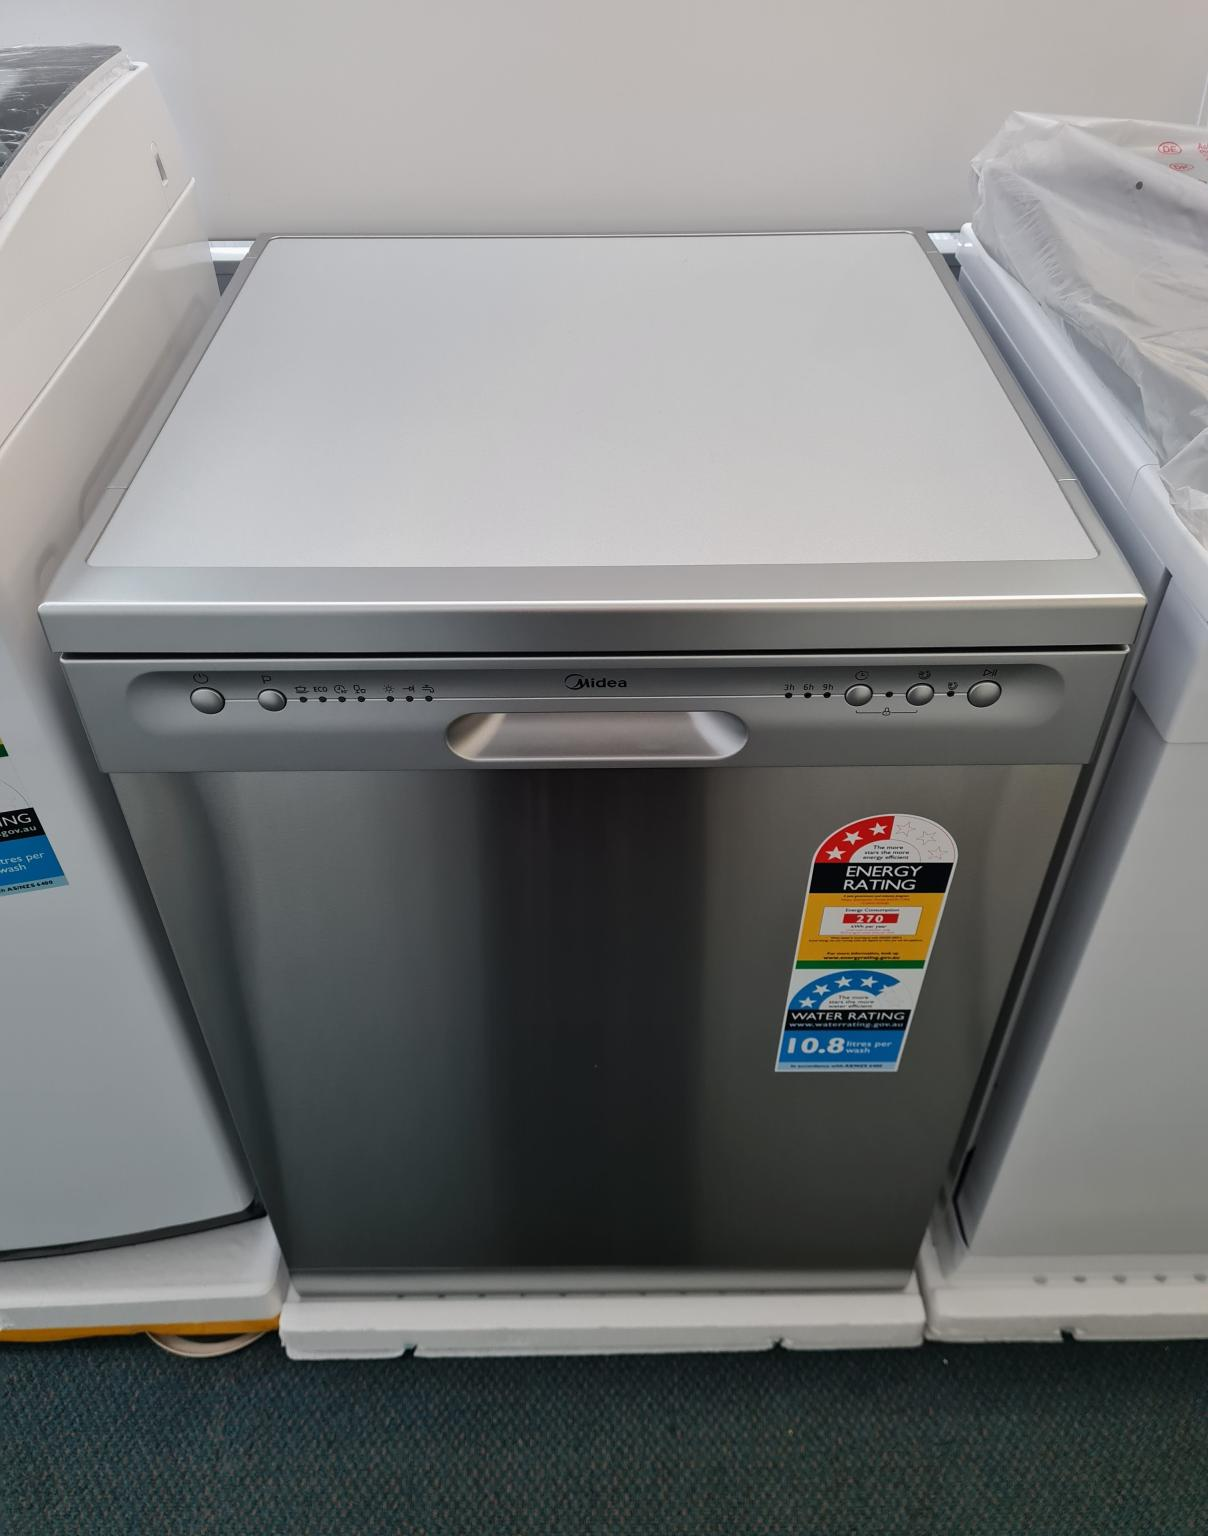 Brand New Midea 12 Place Setting Dishwasher Stainless Steel JHDW123FS